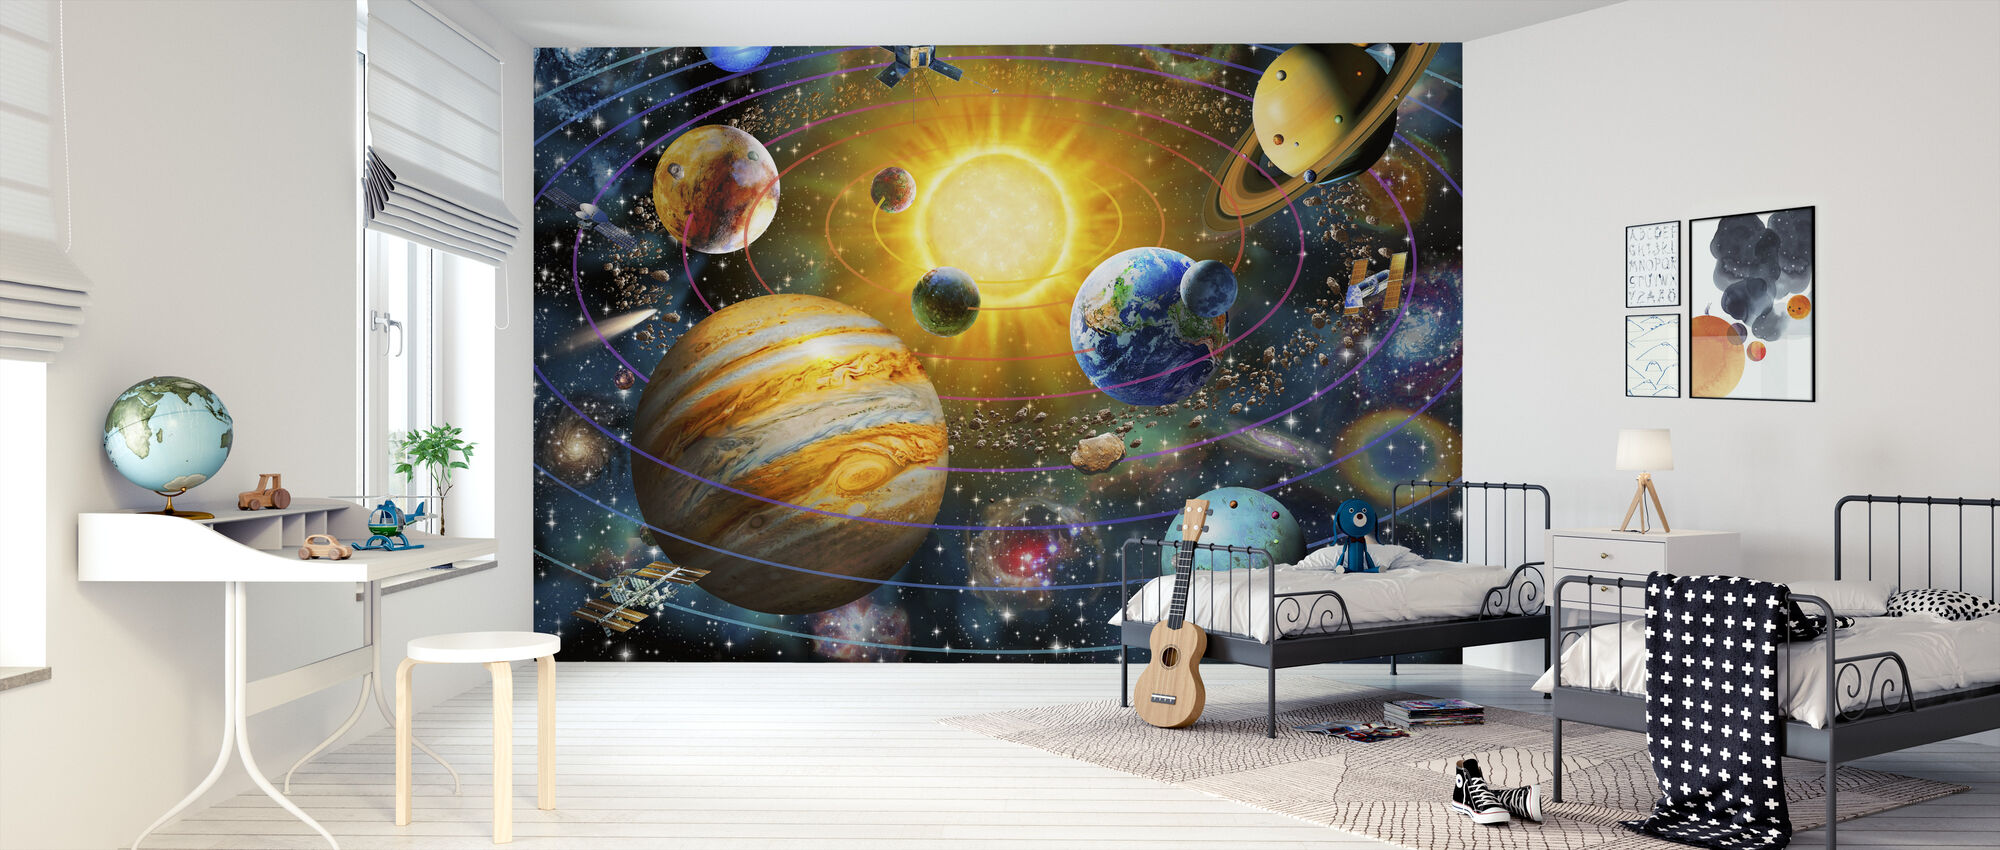 Ringed Solar System - Wallpaper - Kids Room